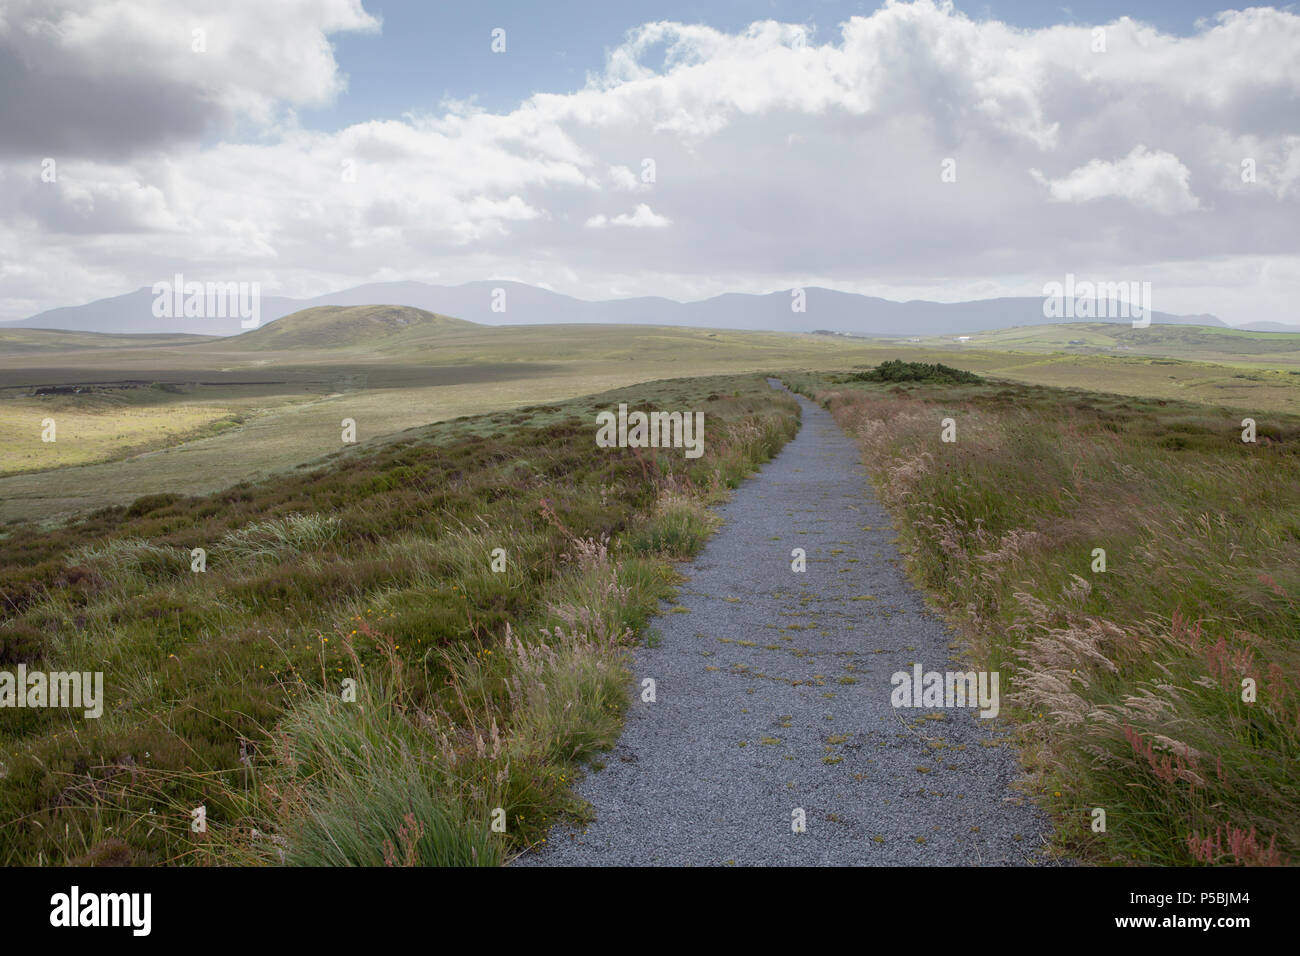 Views of the Nephin Beg Mountain range from the looped walk at the Visitor Centre at Ballycroy National Park in County Mayo, Ireland - Stock Image